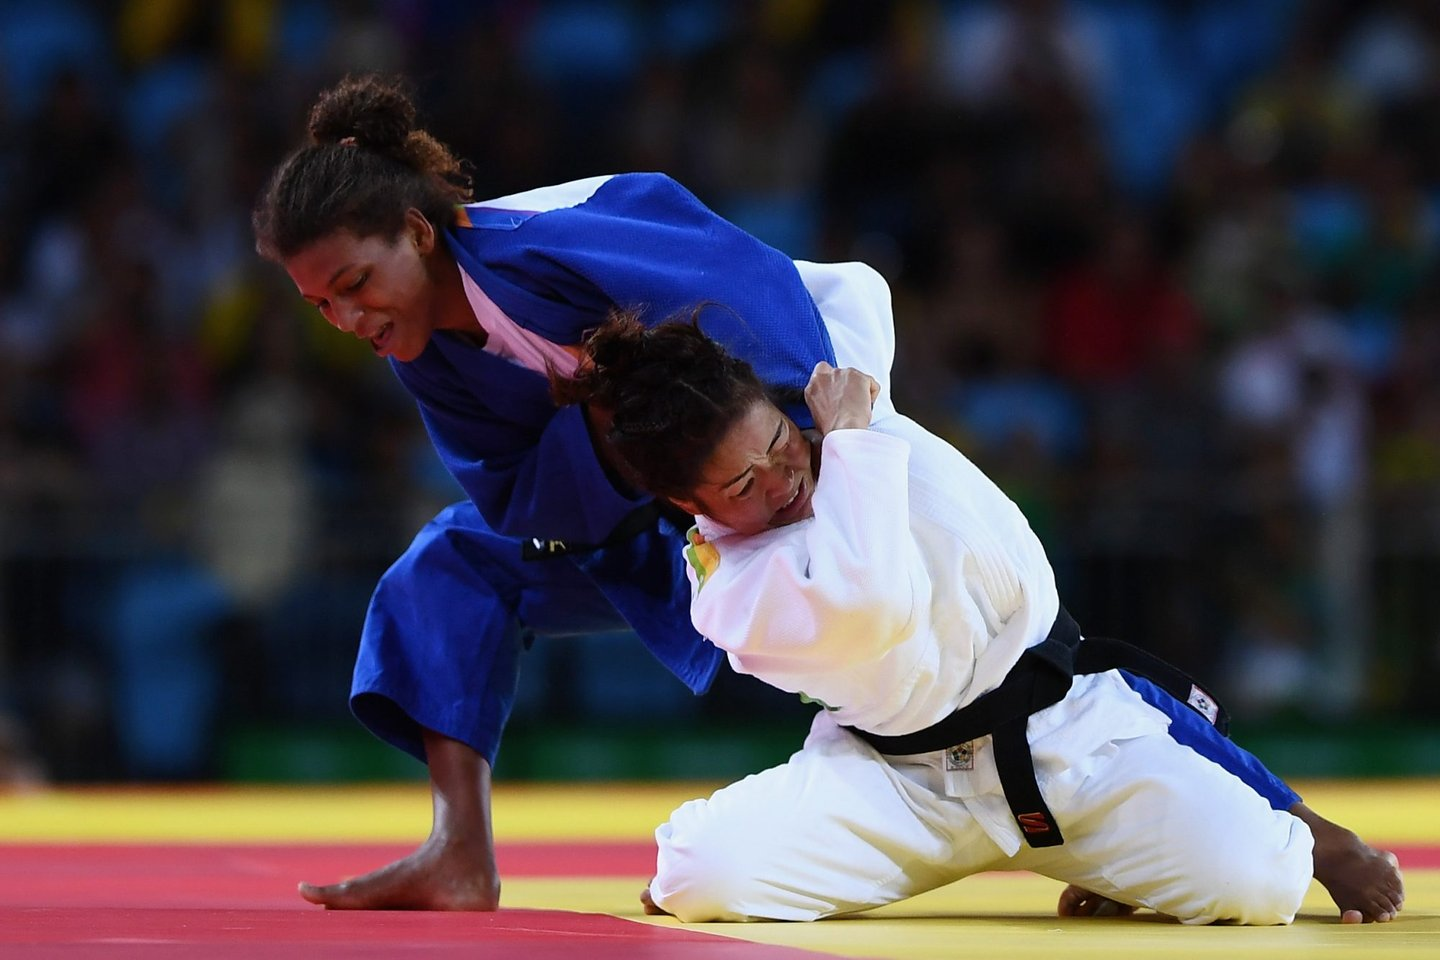 RIO DE JANEIRO, BRAZIL - AUGUST 08: Rafaela Silva of Brazil (blue) competes against Sumiya Dorjsuren of Mongolia in the Women's -57 kg Final - Gold Medal Contest on Day 3 of the Rio 2016 Olympic Games at Carioca Arena 2 on August 8, 2016 in Rio de Janeiro, Brazil. (Photo by David Ramos/Getty Images)